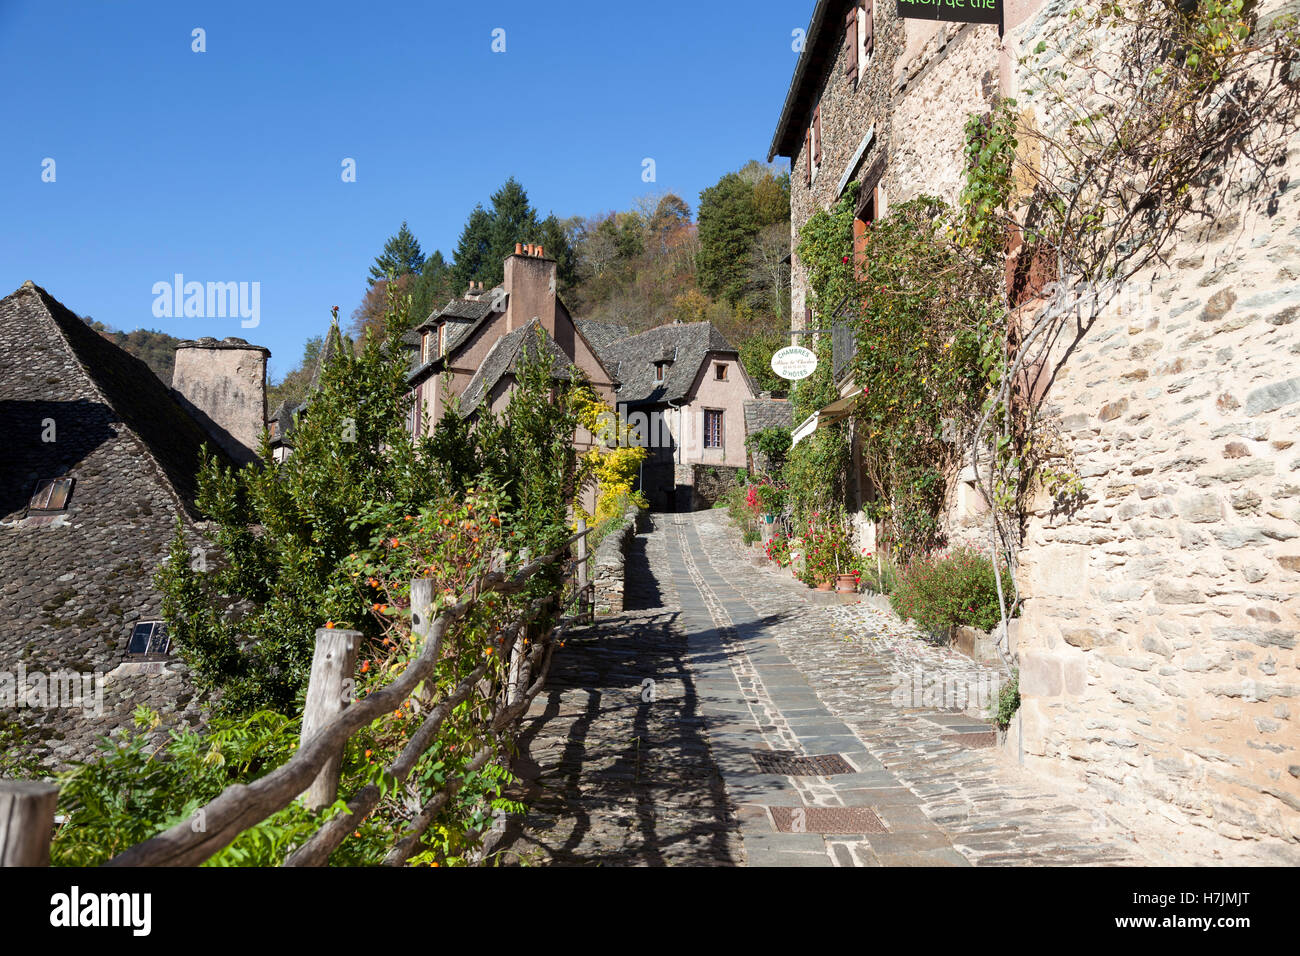 The small medieval village of Conques (Aveyron - France). It shows visitors its cobbled streets lined by old clustered - Stock Image